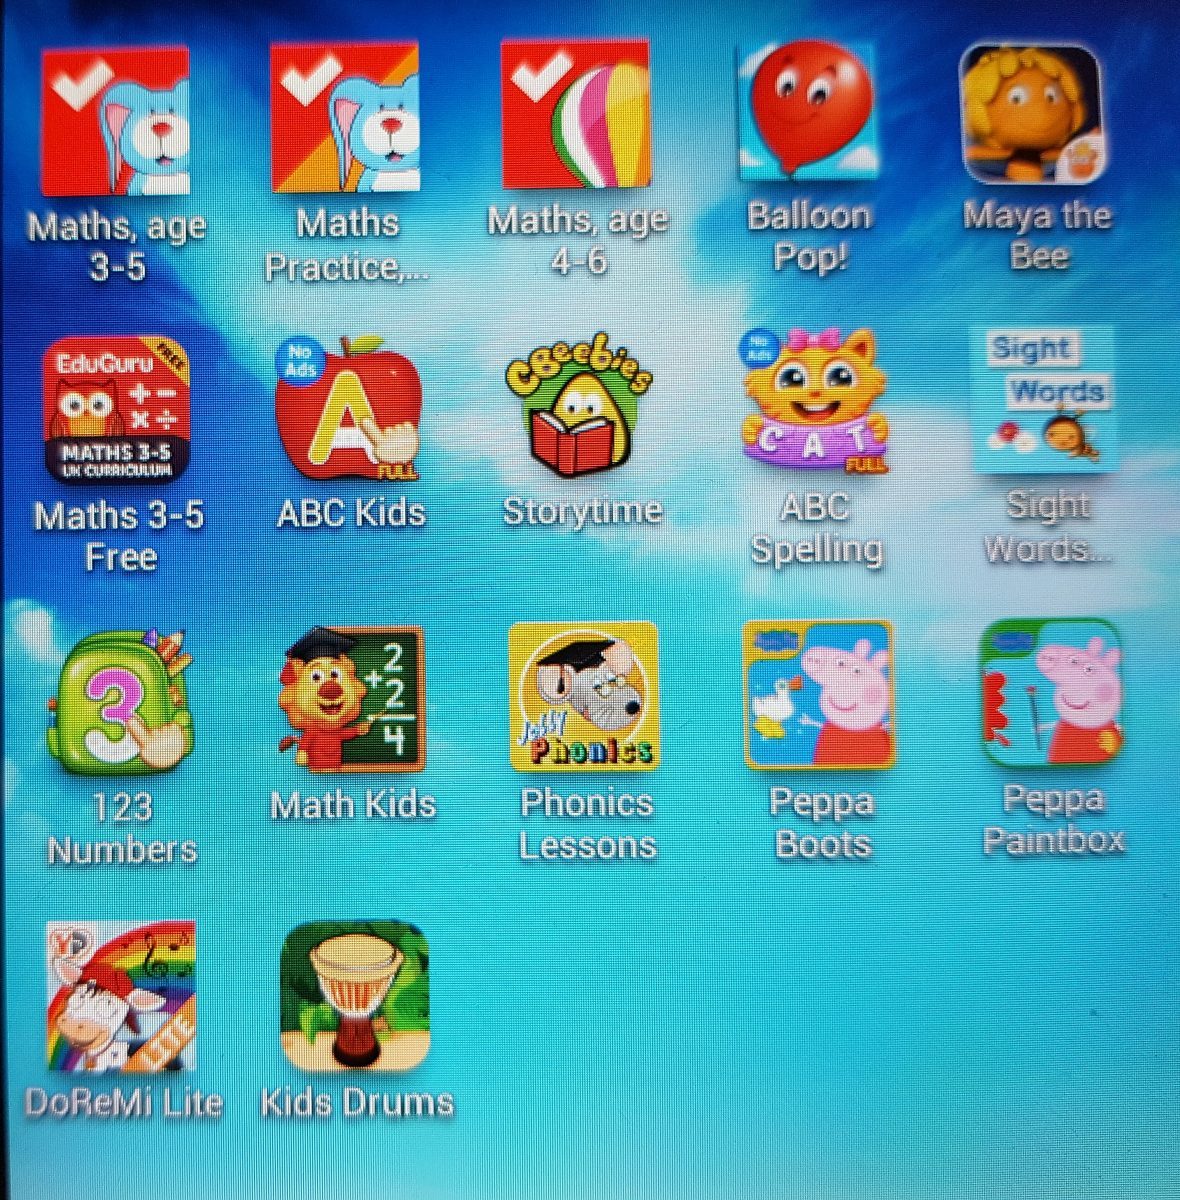 apps - various languages - tablet screen showing app icons for learning apps